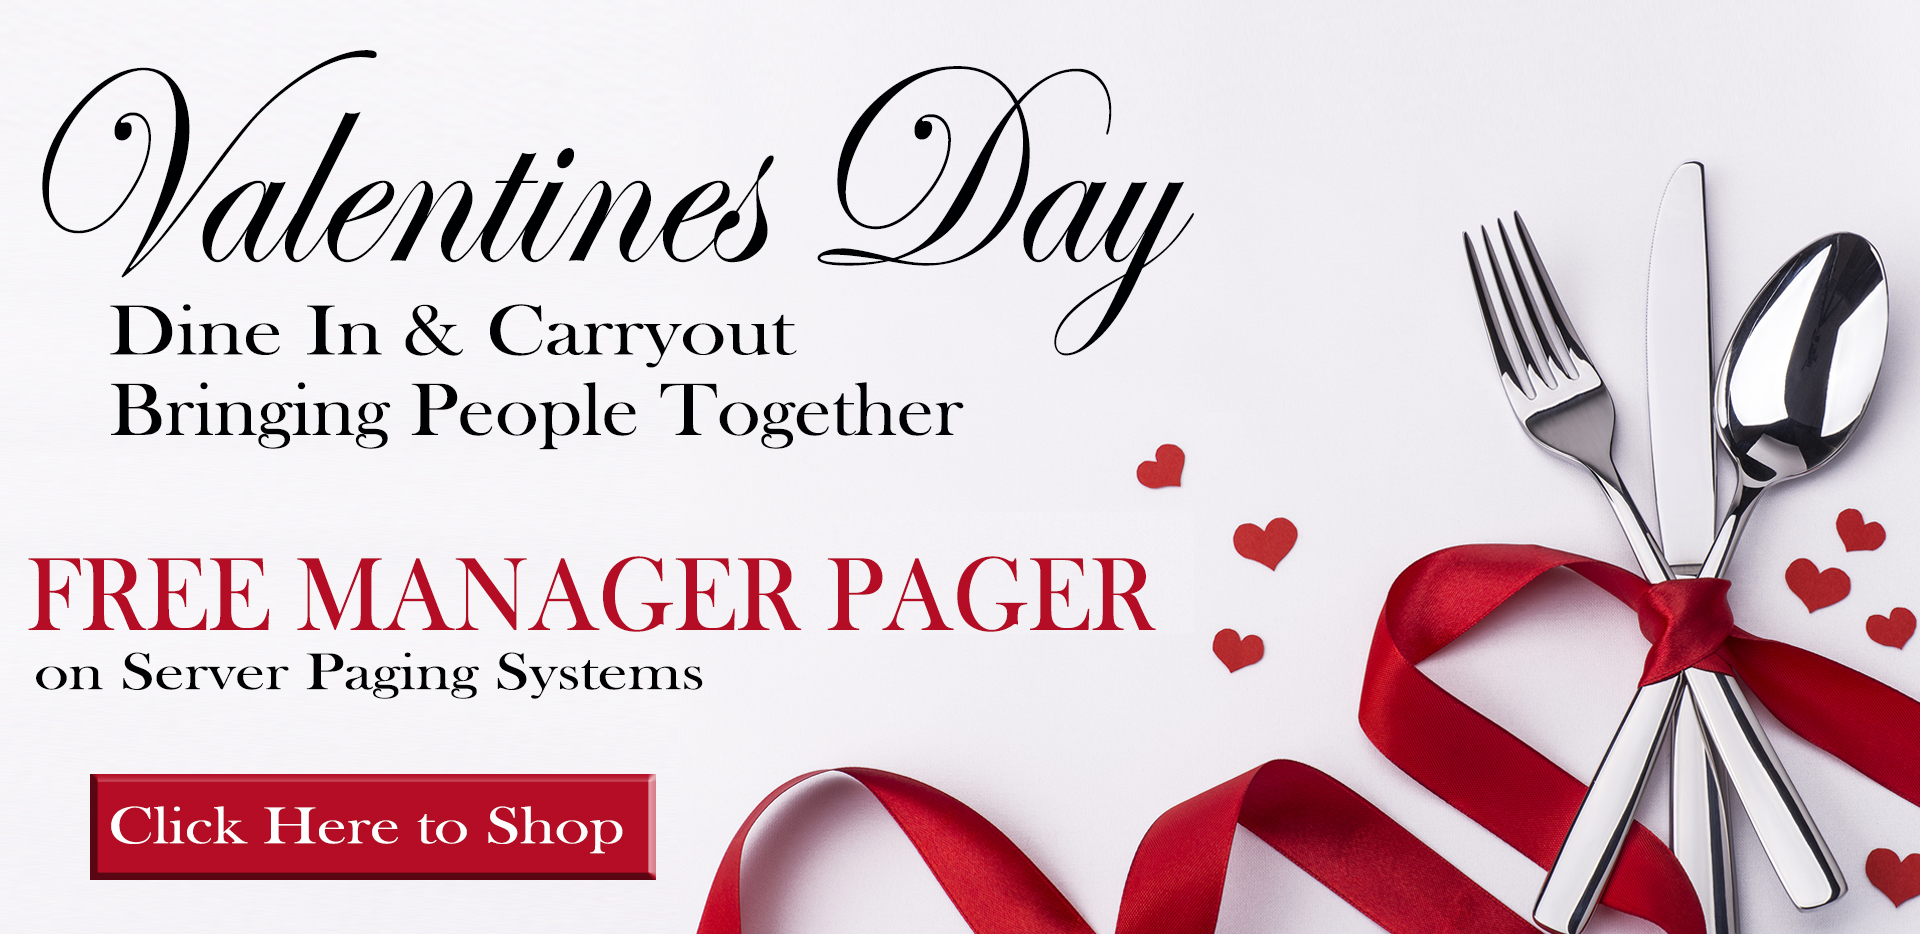 valentines-promo-2021-banner-with-click-here-button.jpg